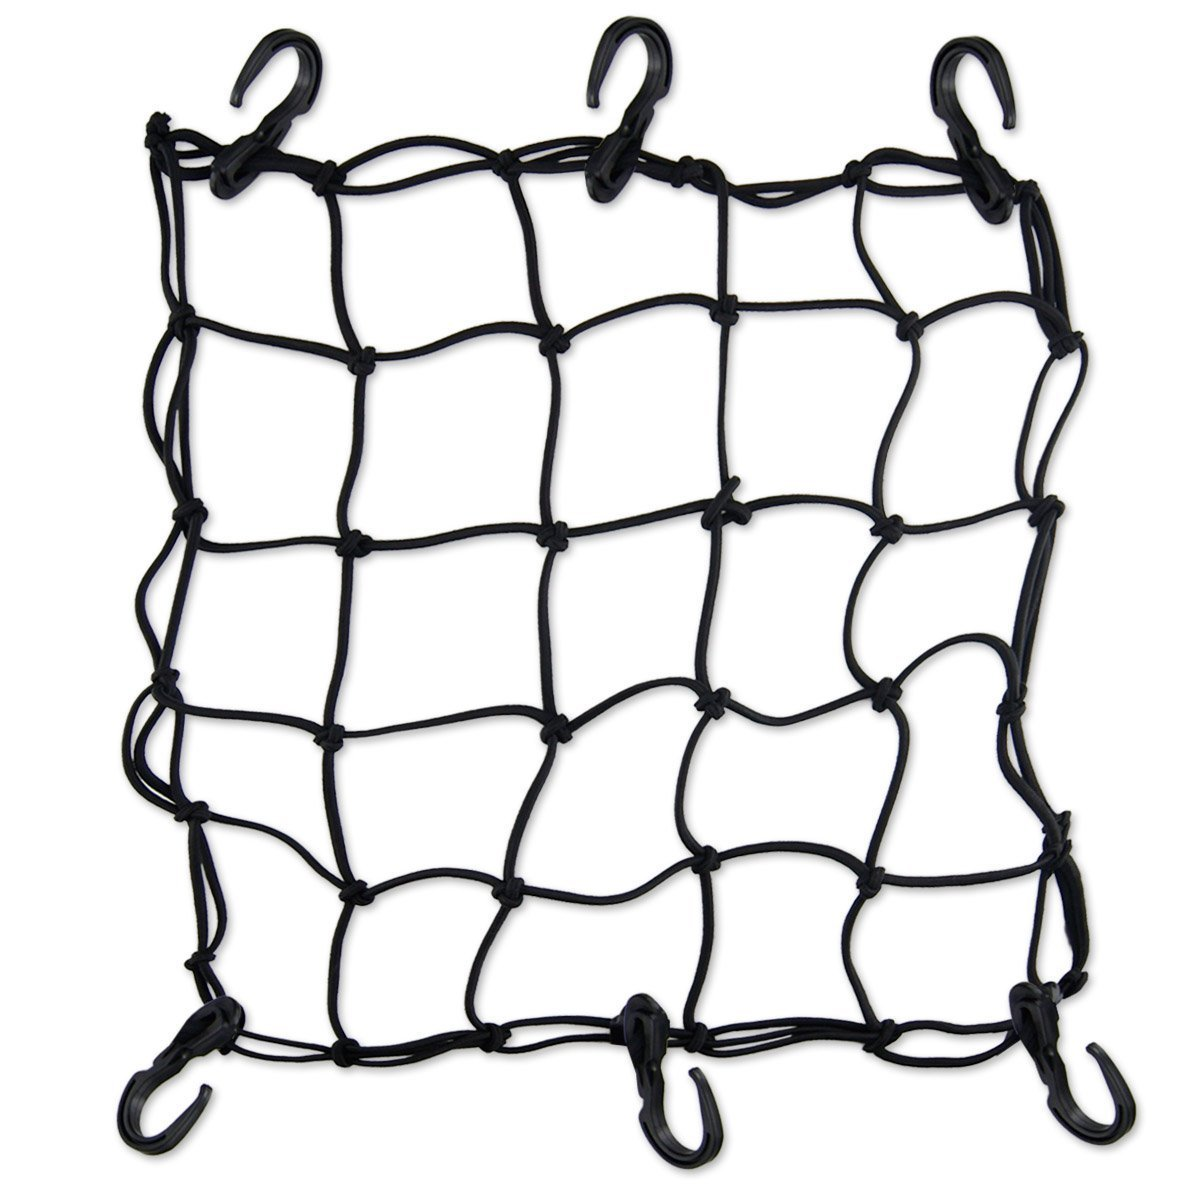 Bike-pictures.net Premium Bike Bungee Cargo Net